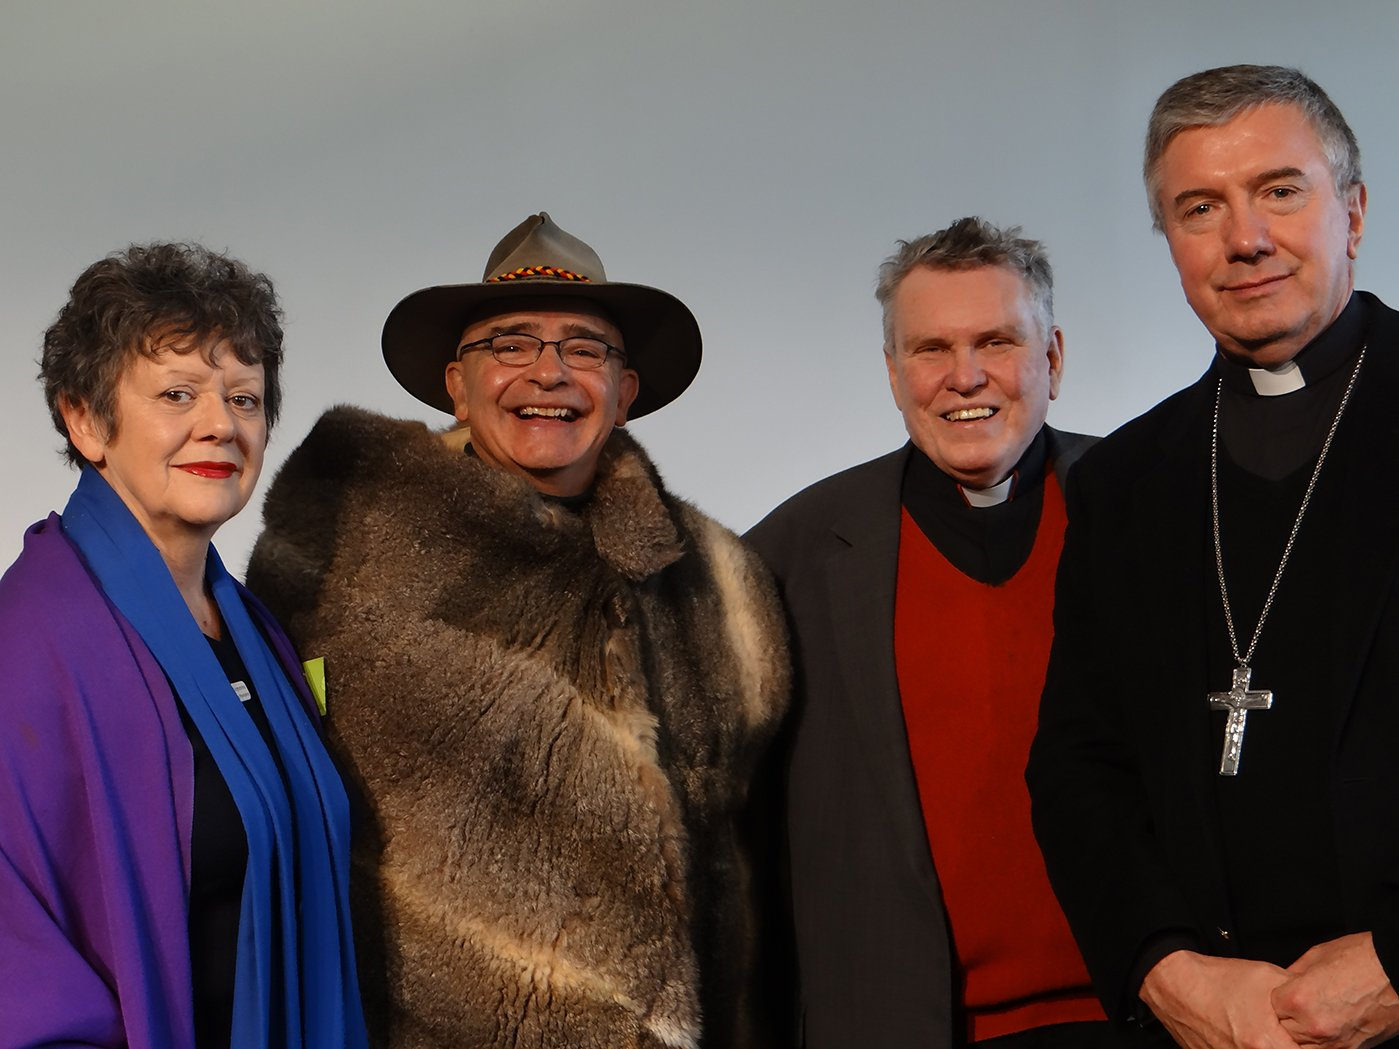 Archbishop Christopher Prowse with (from left) Vanessa Crimmins, chair of the Presbytery of the Uniting Church, Shane Mortimer from the Ngambri nation and Dean Phillip Saunders, Dean of the Anglican Cathedral, St Saviours, Goulburn